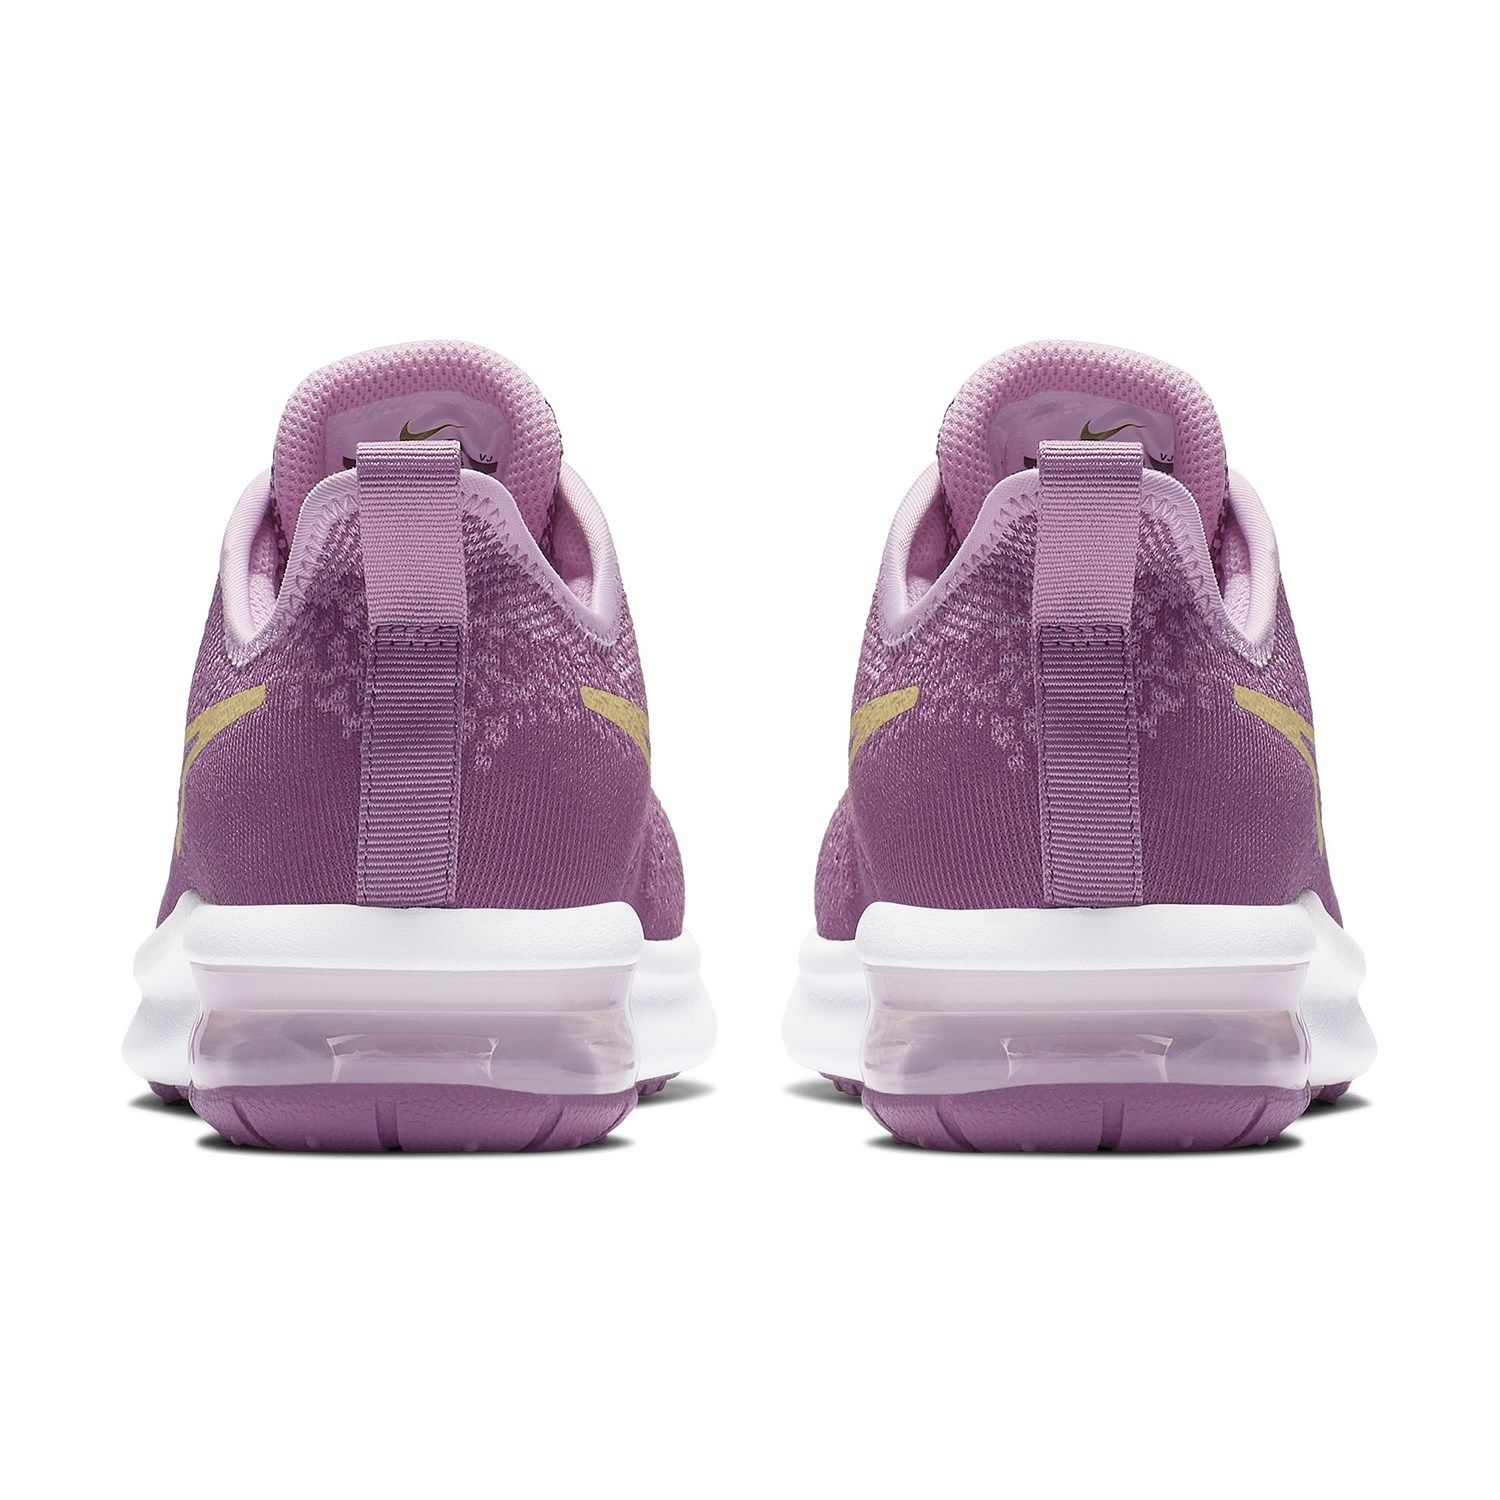 Nike Air Max Sequent 4 Grade School Girls' Sneakers #Max